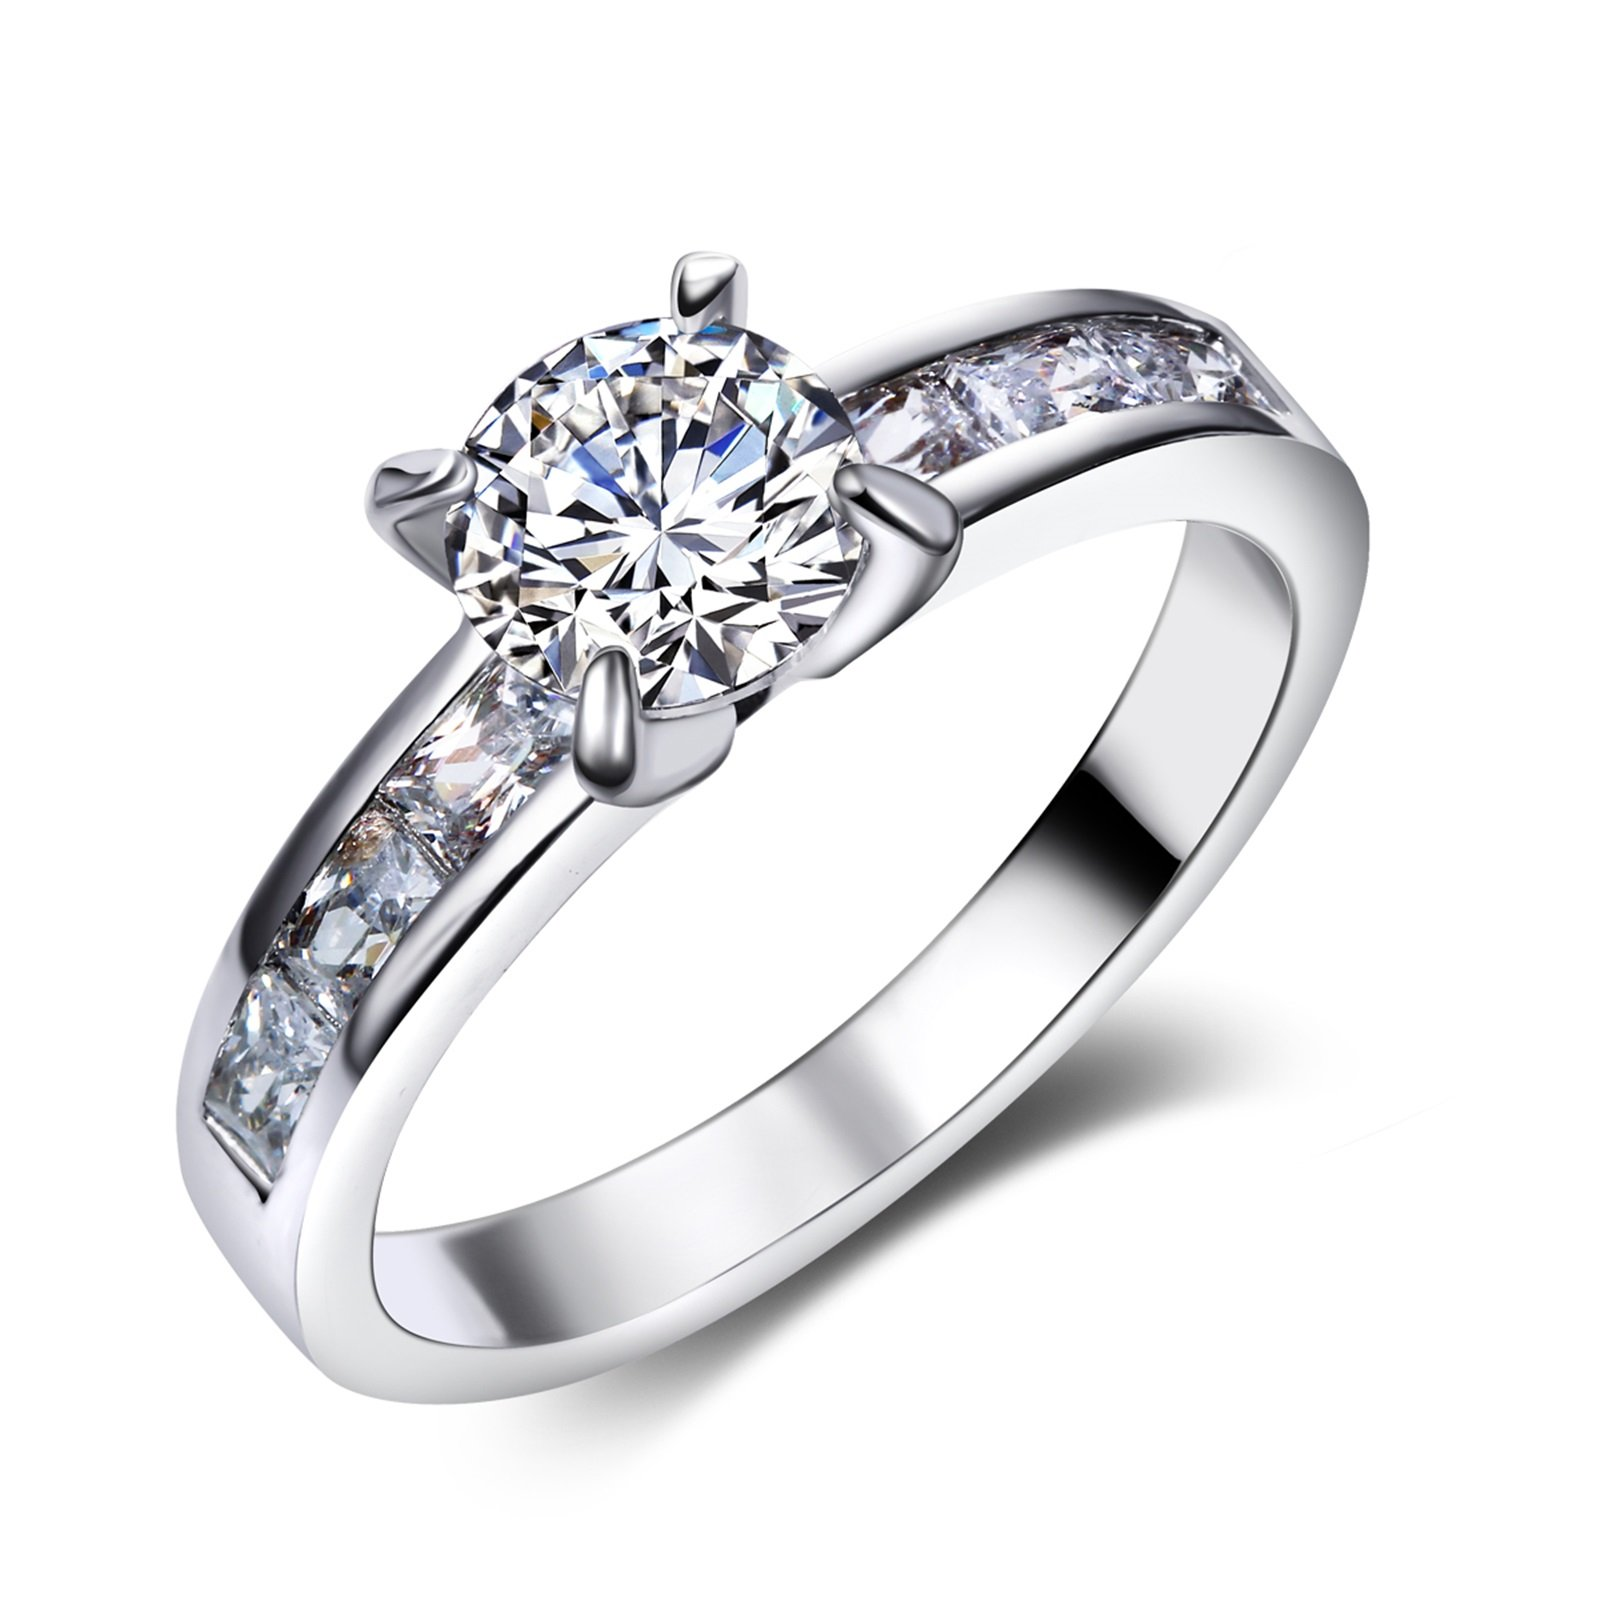 Beydodo Silver Plated Rings for Women Jewelry Size 6 Solitaire Ring 4-prong Setting Round Cut Crystal